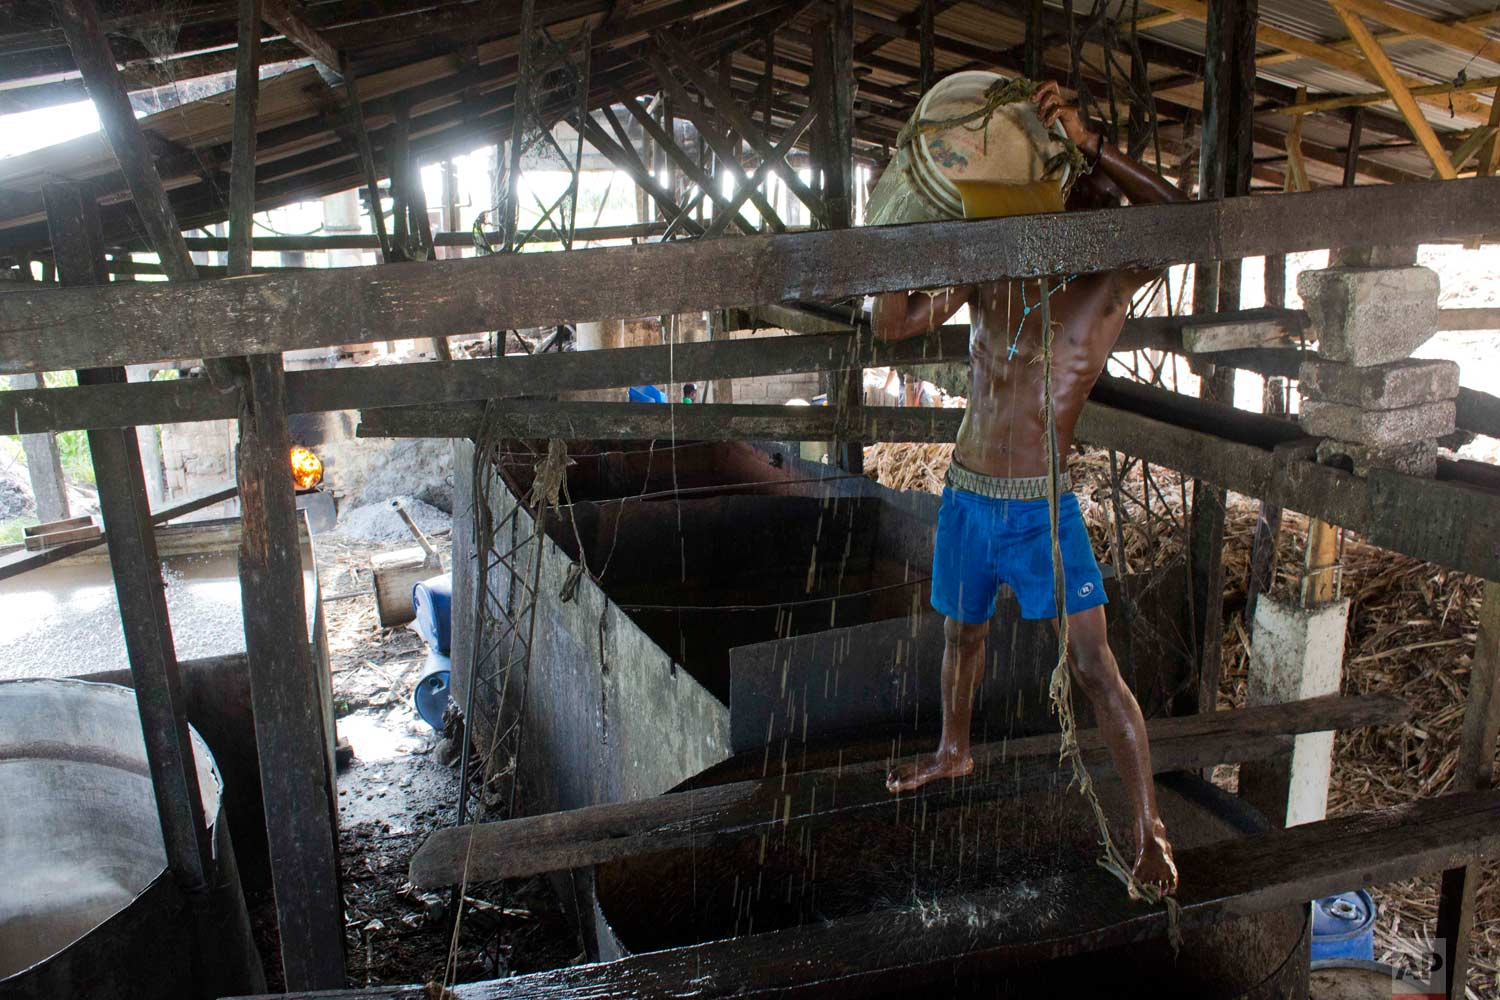 In this June 19, 2017 photo, Gabriel Shnaider, 22, pours sugar cane water into a boiler at the Ti Jean distillery, which produces clairin, a sugar-based alcoholic drink, in Leogane, Haiti. At Ti Jean, after the juice is fermented and filtered, it is shipped in plastic jugs to be sold in market stalls and by street merchants around the region. Individual retailers add flavors with herbs or fruit. (AP Photo/Dieu Nalio Chery)